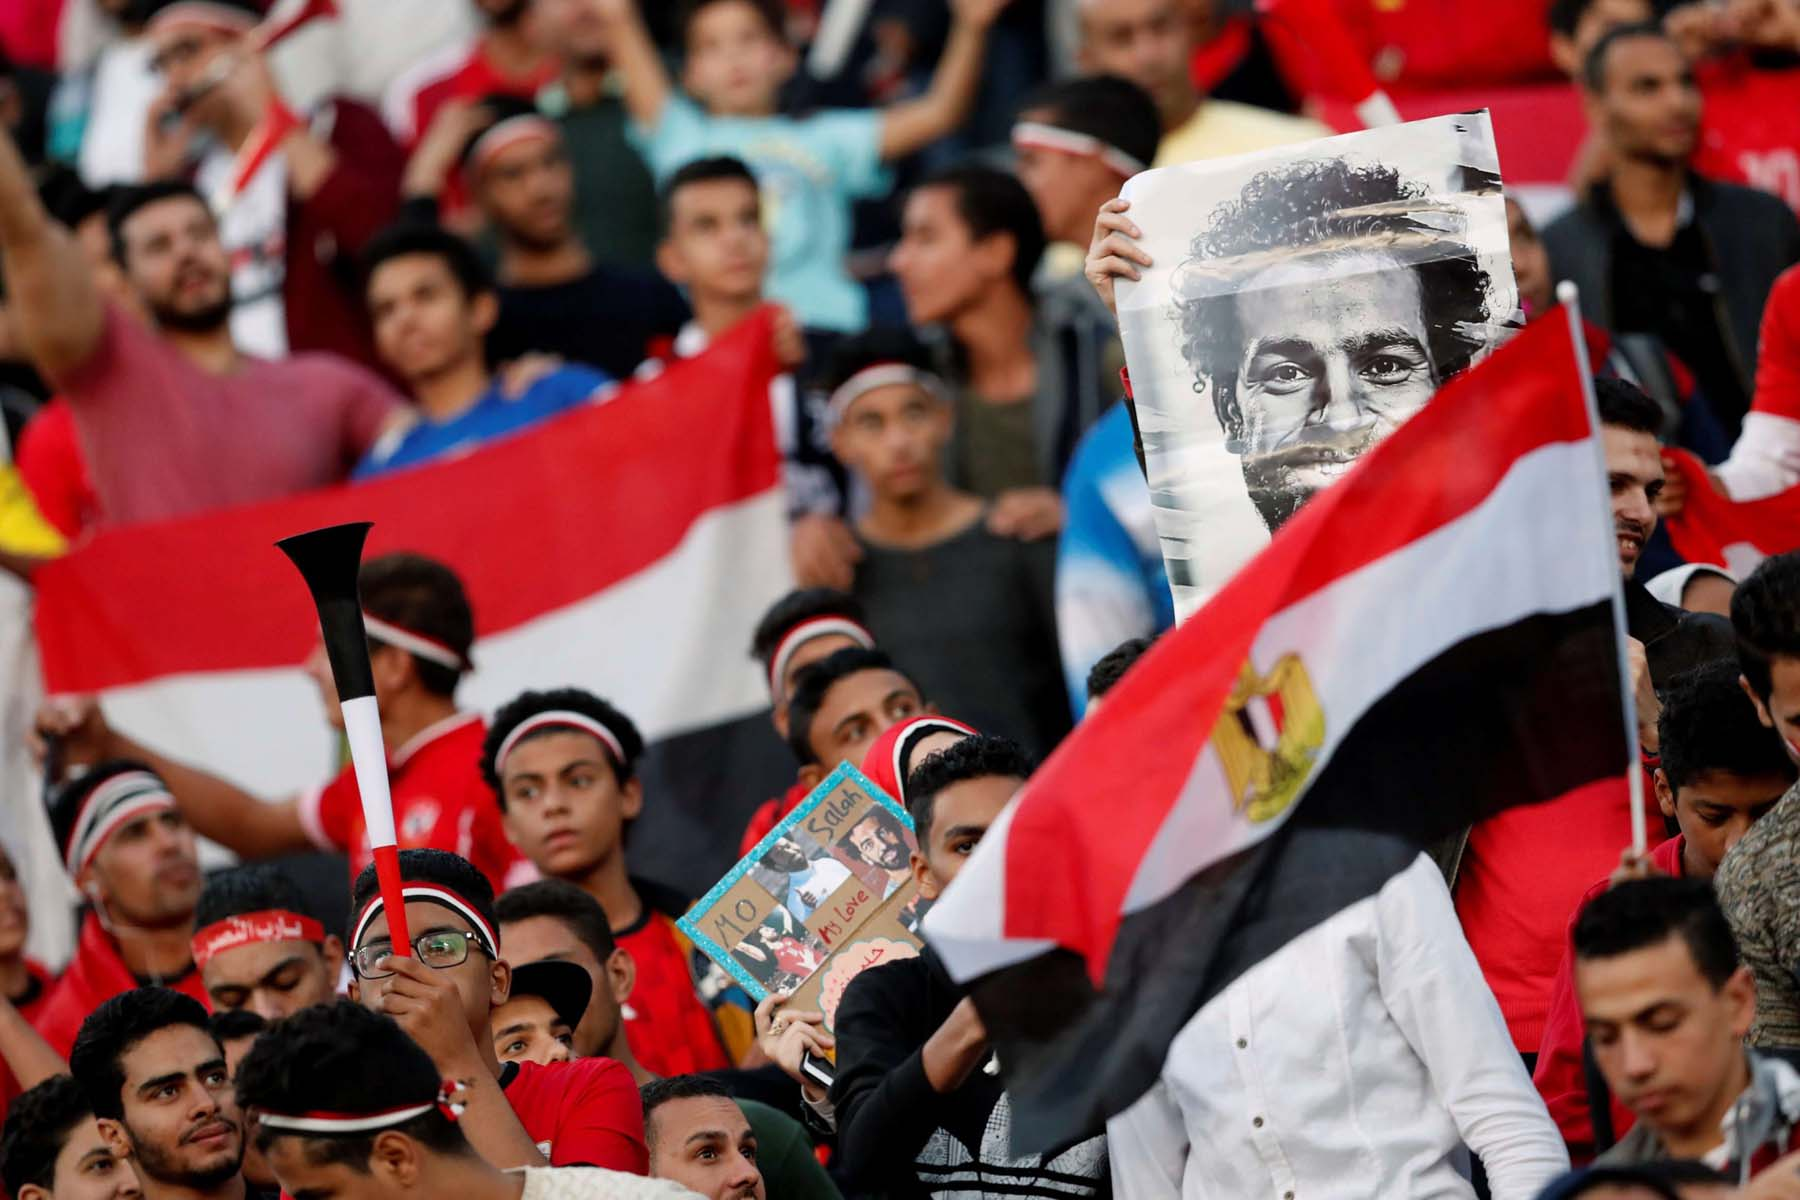 Egyptian football fans with a picture of star player Mohamed Salah before an Africa Cup of Nations Cup qualifying match in Alexandria, last November. (Reuters)